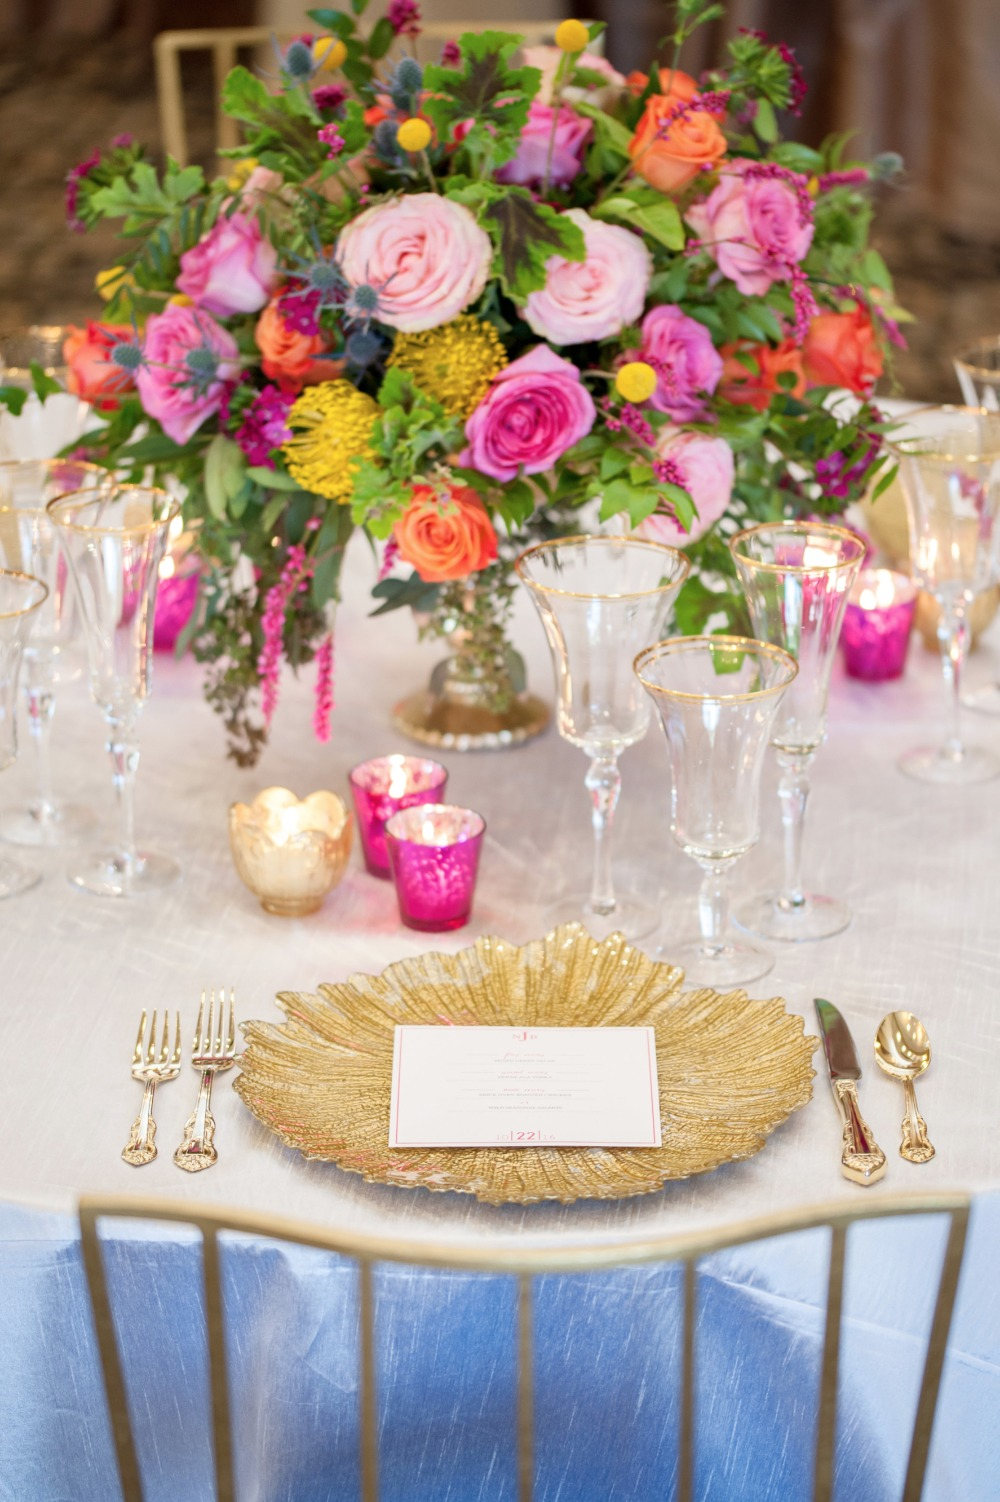 Simple and elegant table decor with gold accents